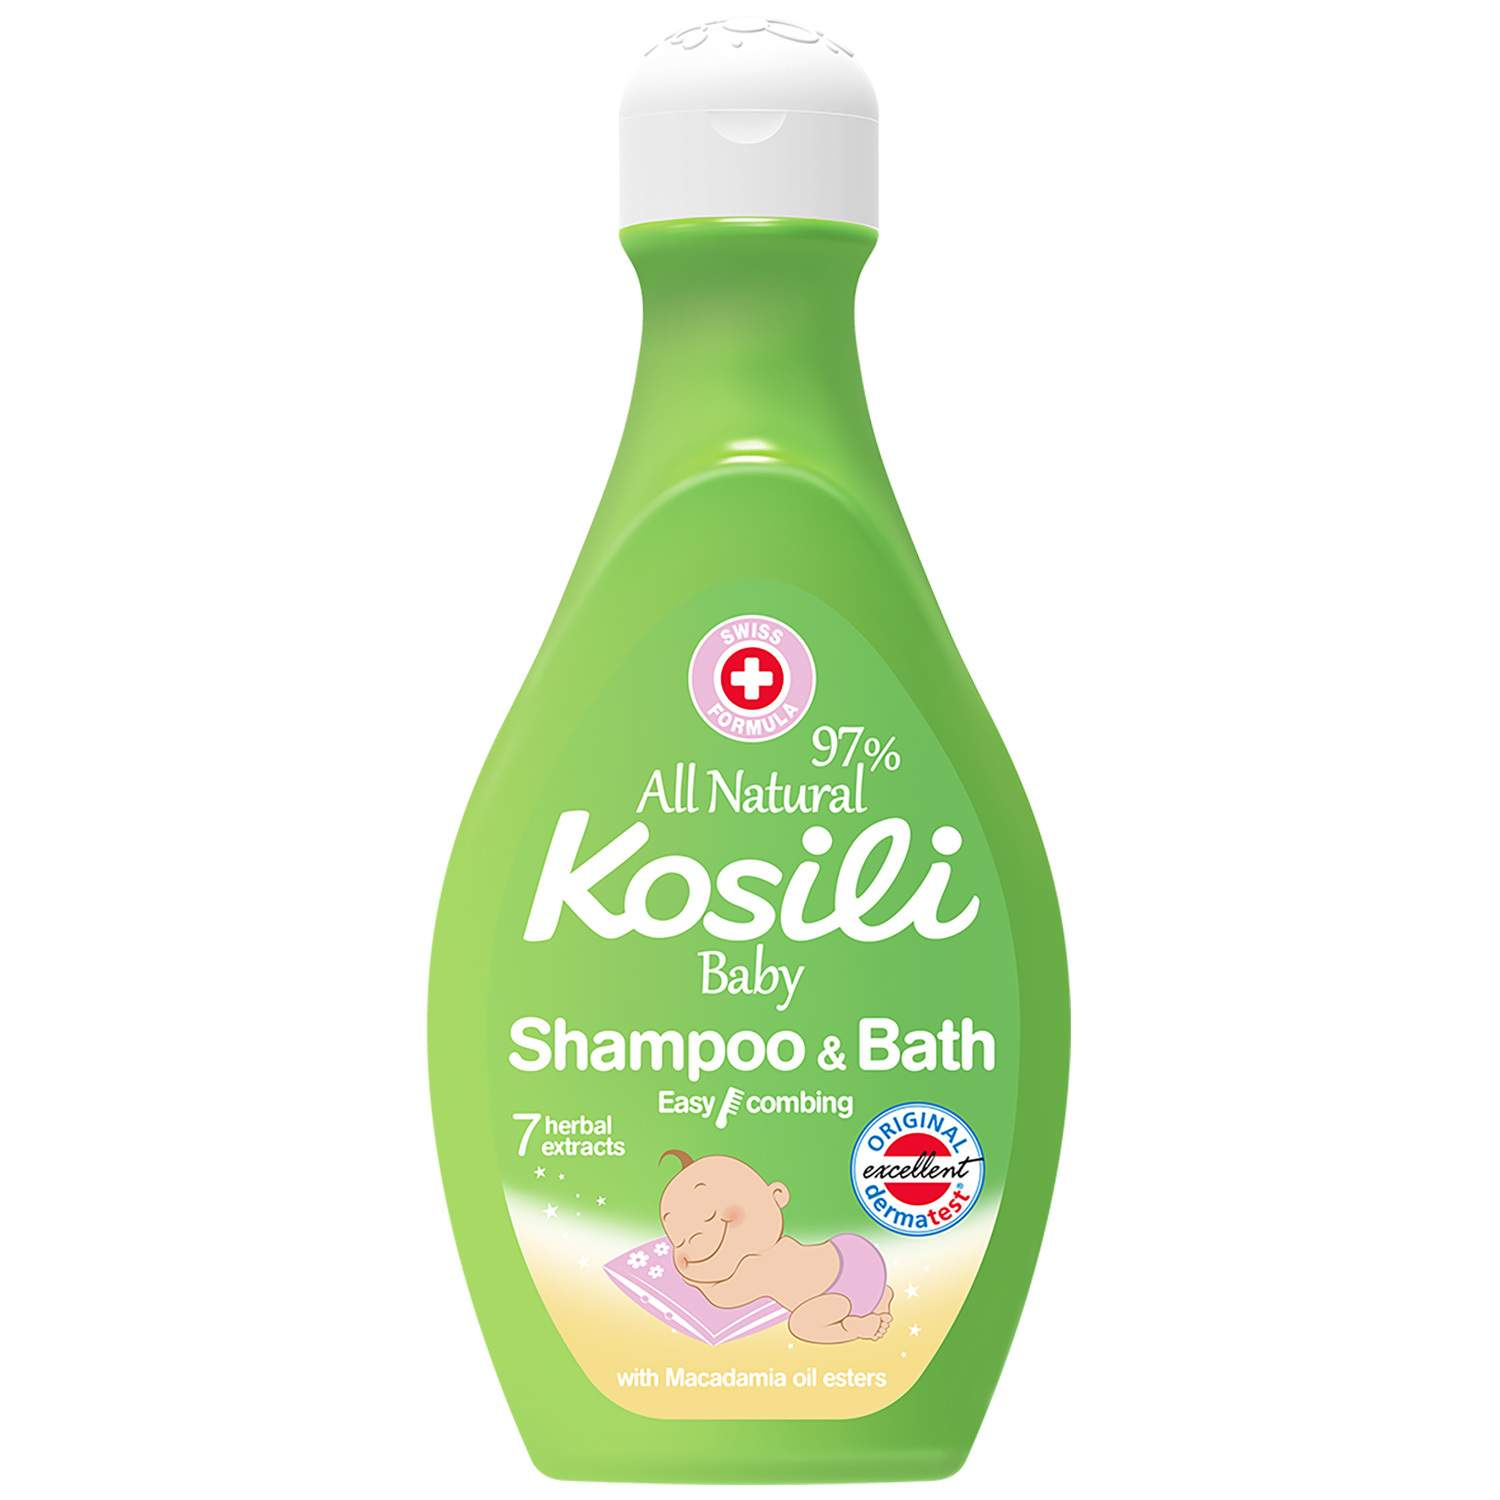 Kosili all natural šampon i kupka 500ml kosili all natural  62a75c41cc